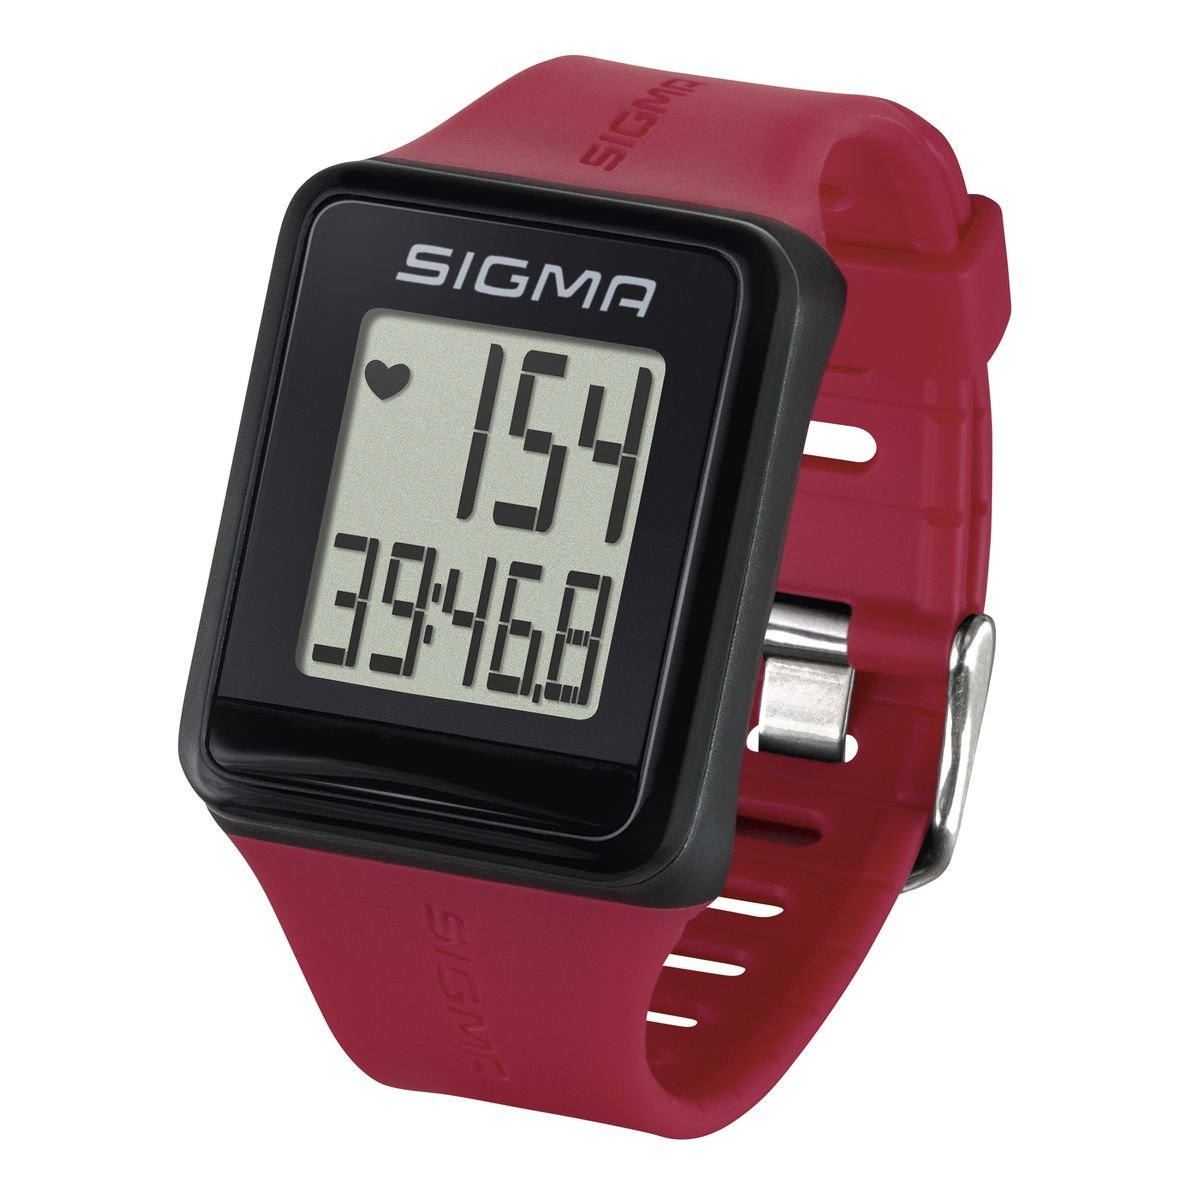 Sigma ID.GO heart rate monitor watch incl. chest strap | Heart rate monitors